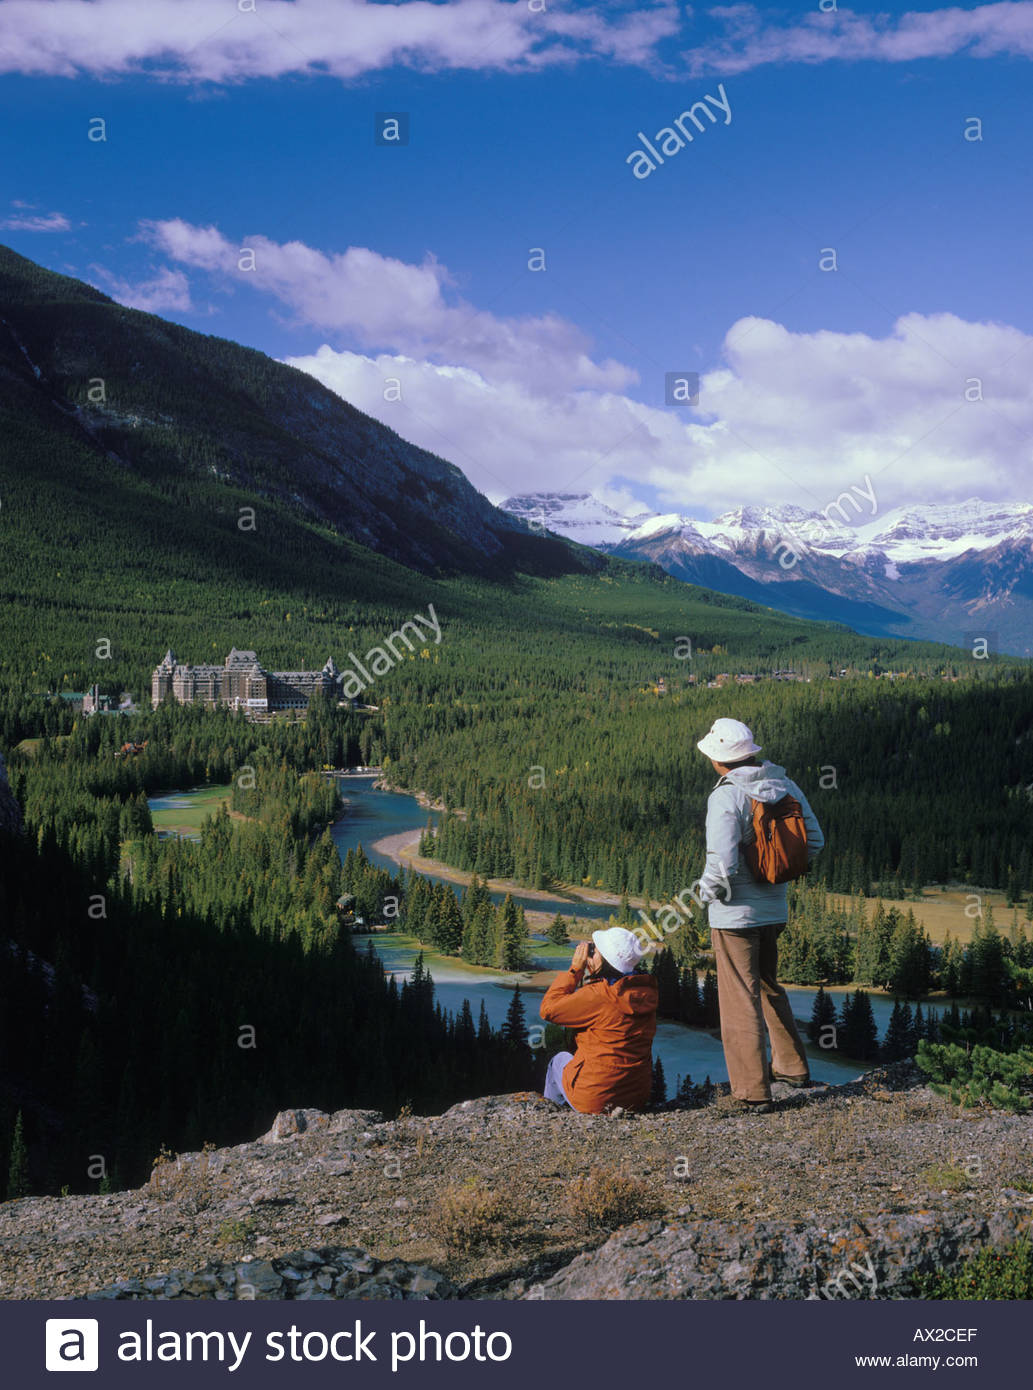 overlooking-the-bow-river-valley-and-the